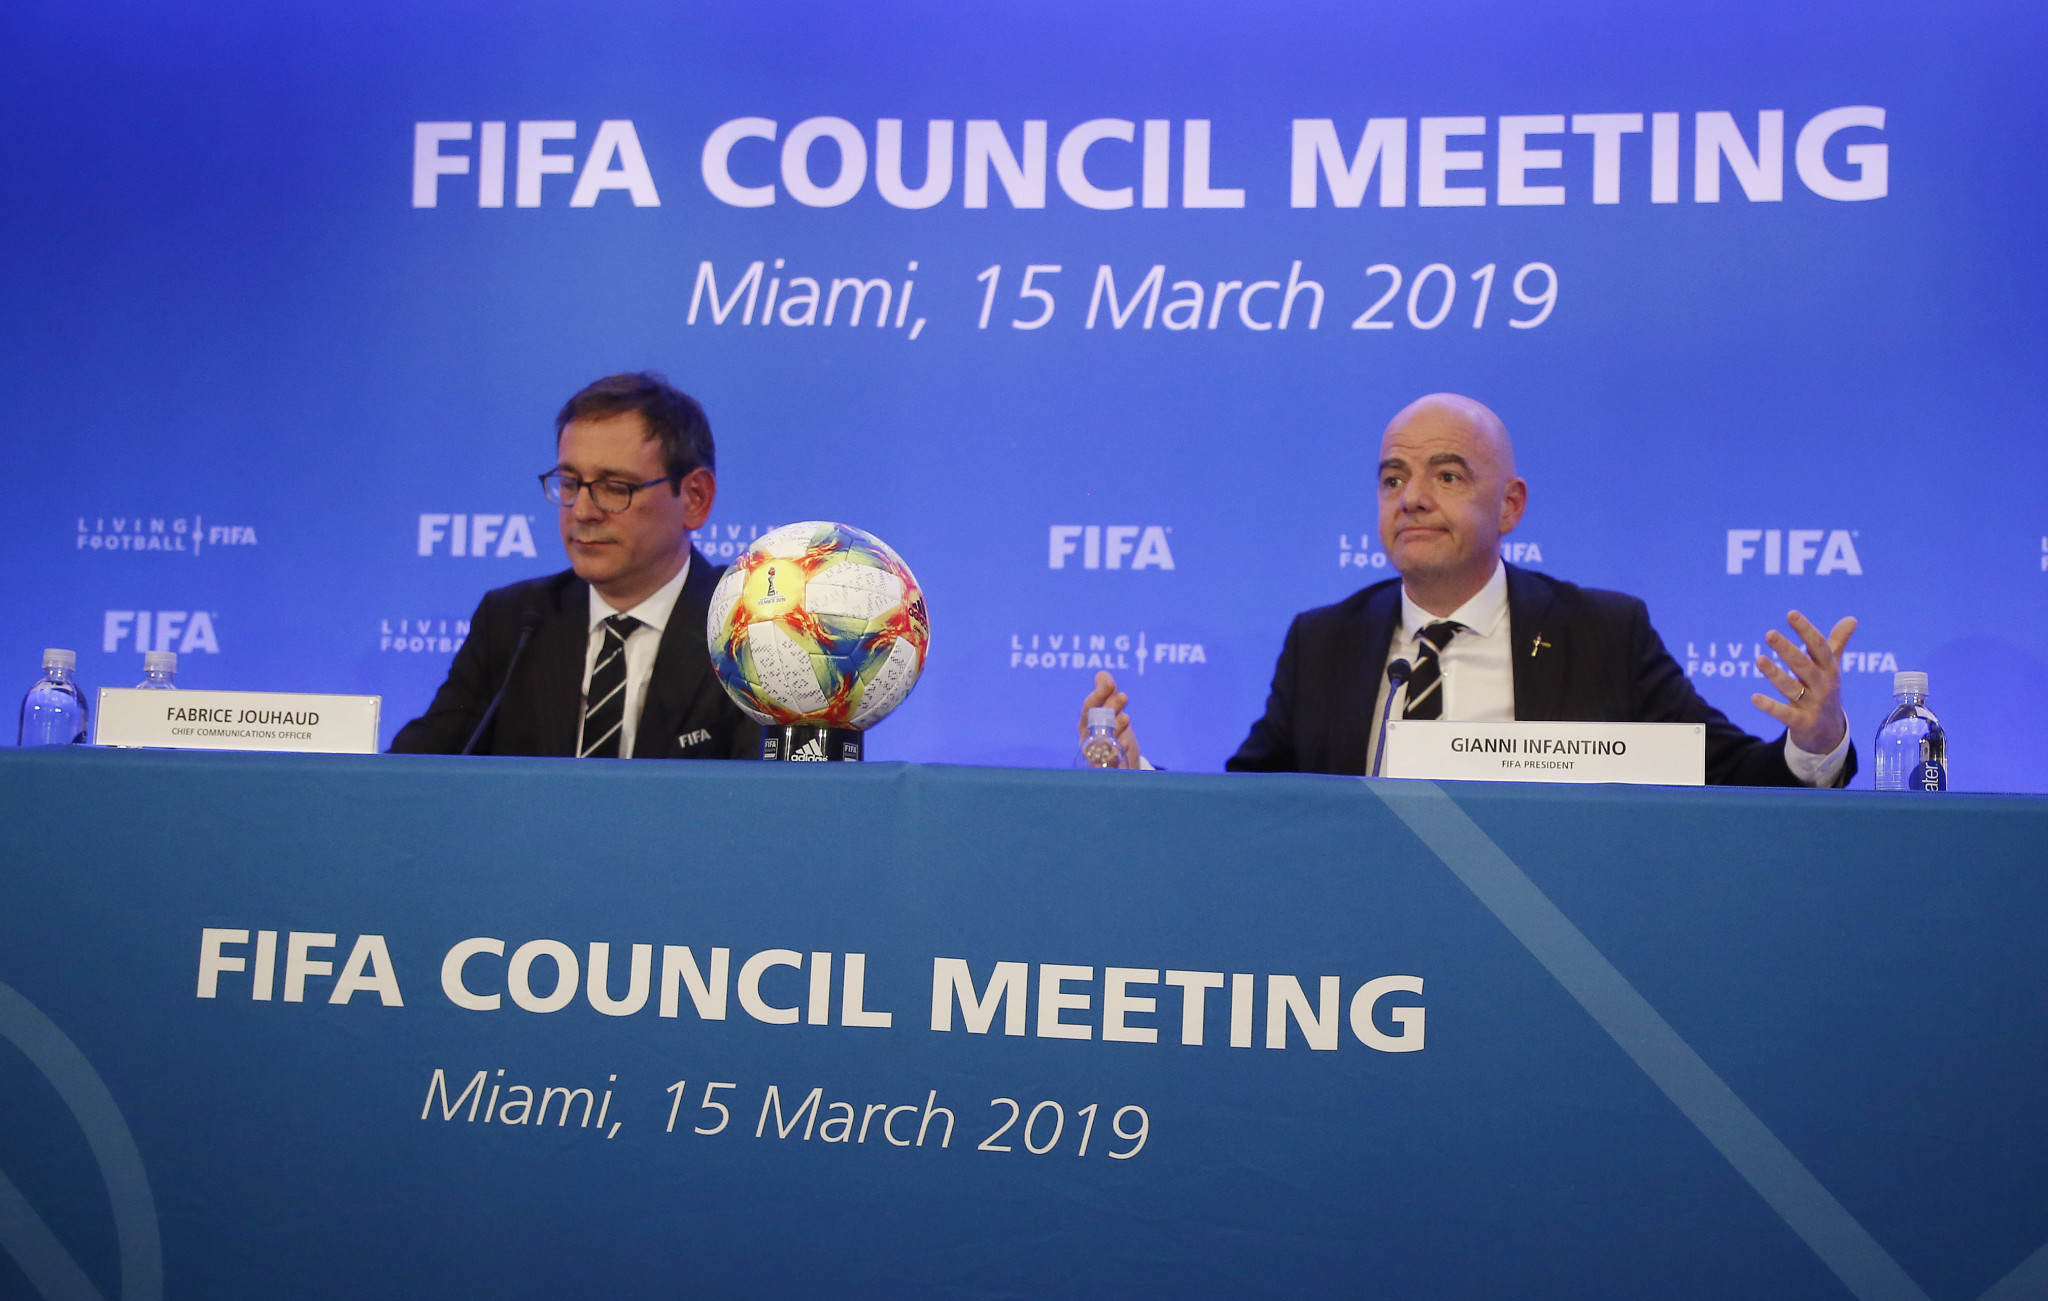 FIFA Council approves plans for 2022 World Cup to feature 48 teams and Qatar to share matches with neighbours